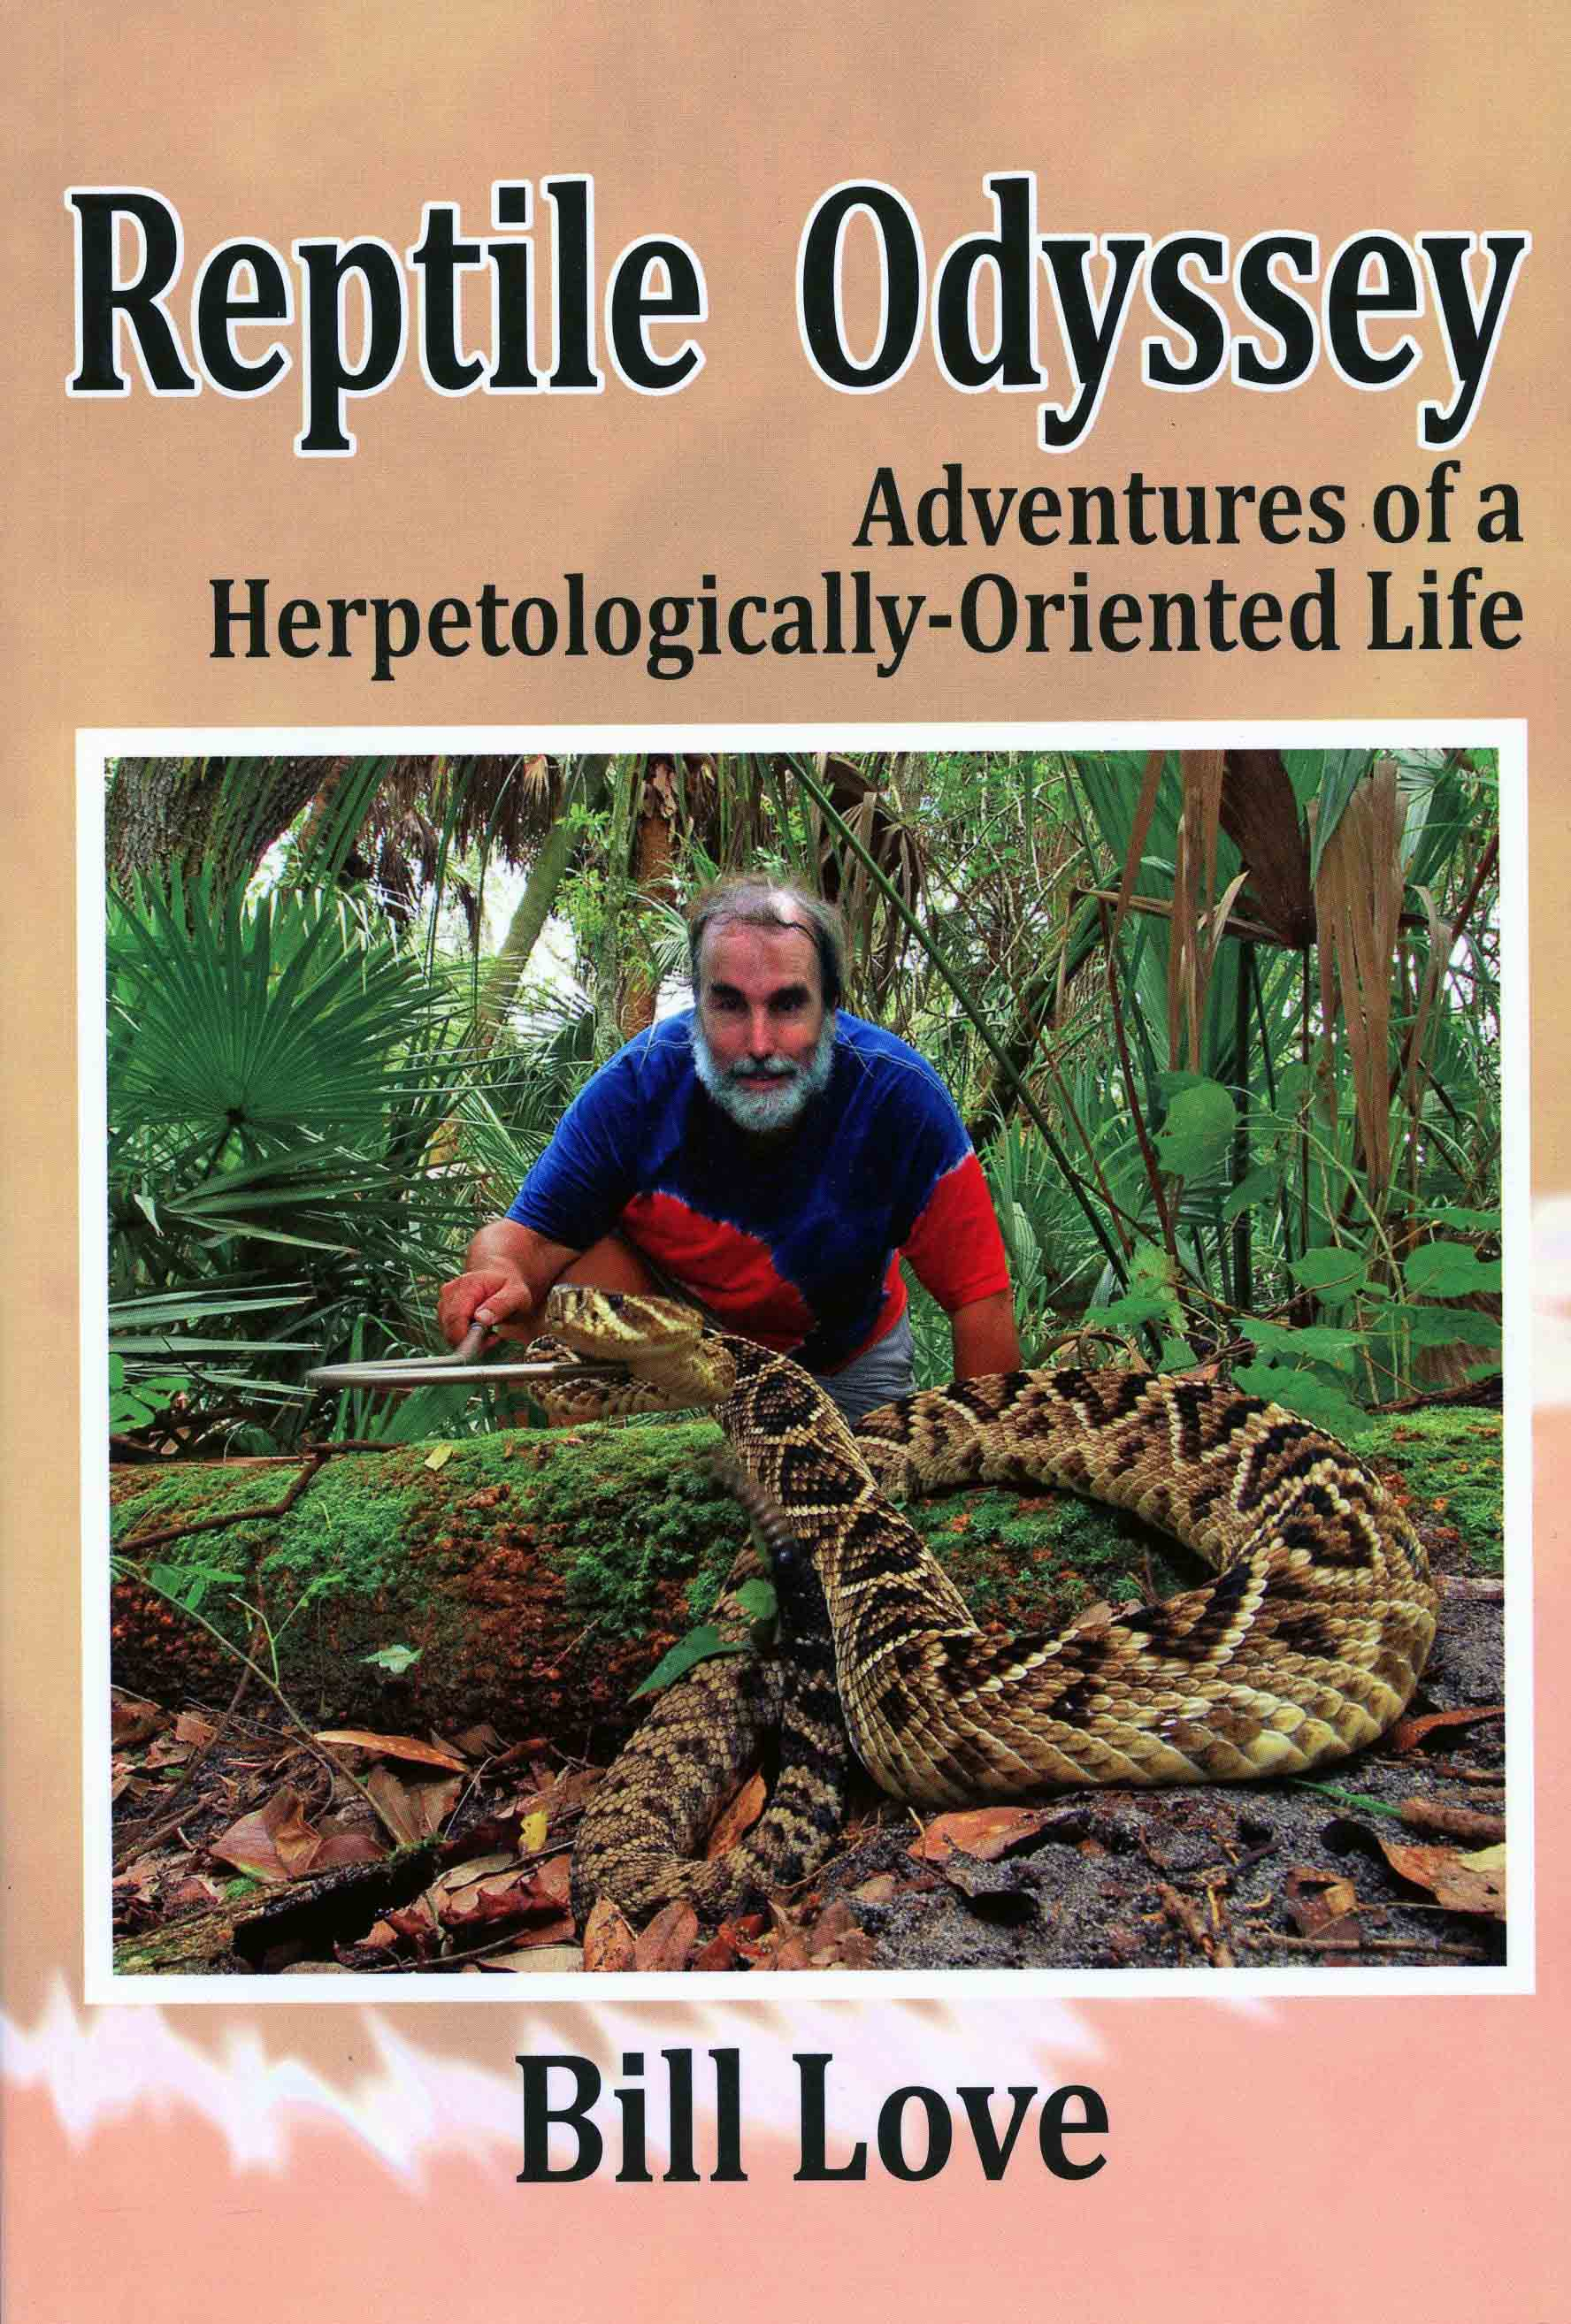 Image for Reptile Odyssey: Adventures of a Herpetologically-Oriented Life,